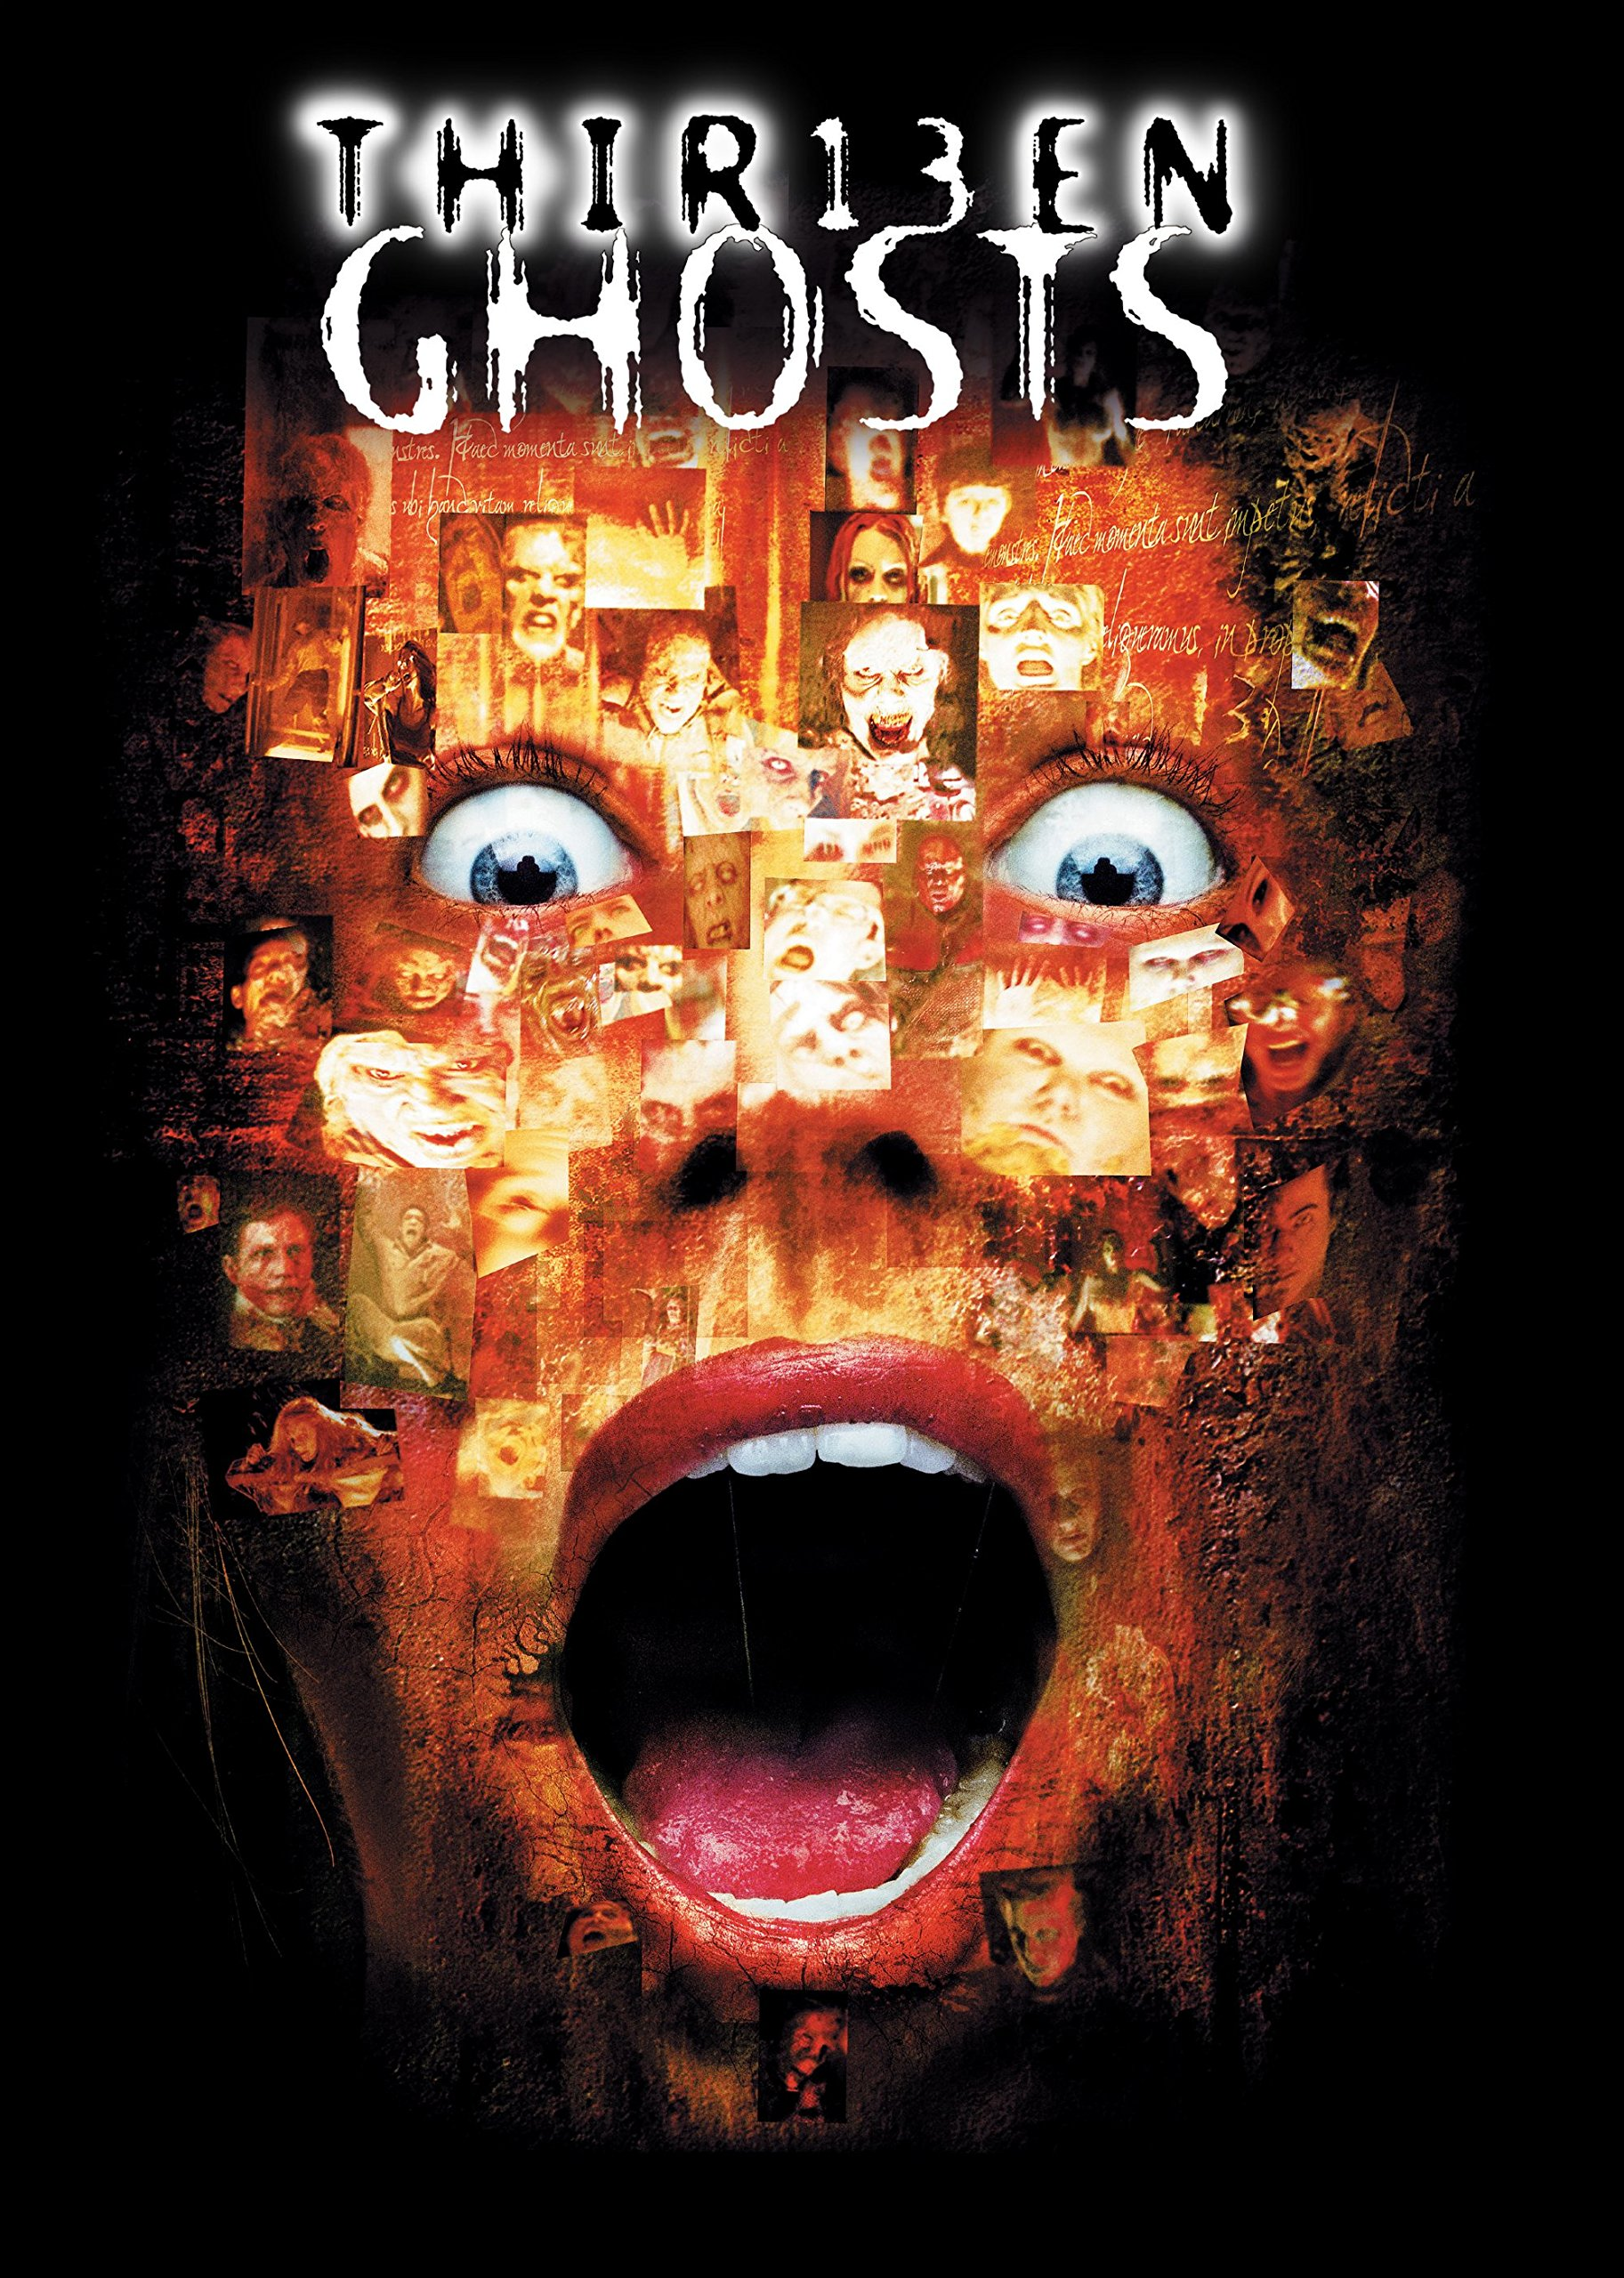 thirteen ghosts 2001 - Wwwfree Resumecom